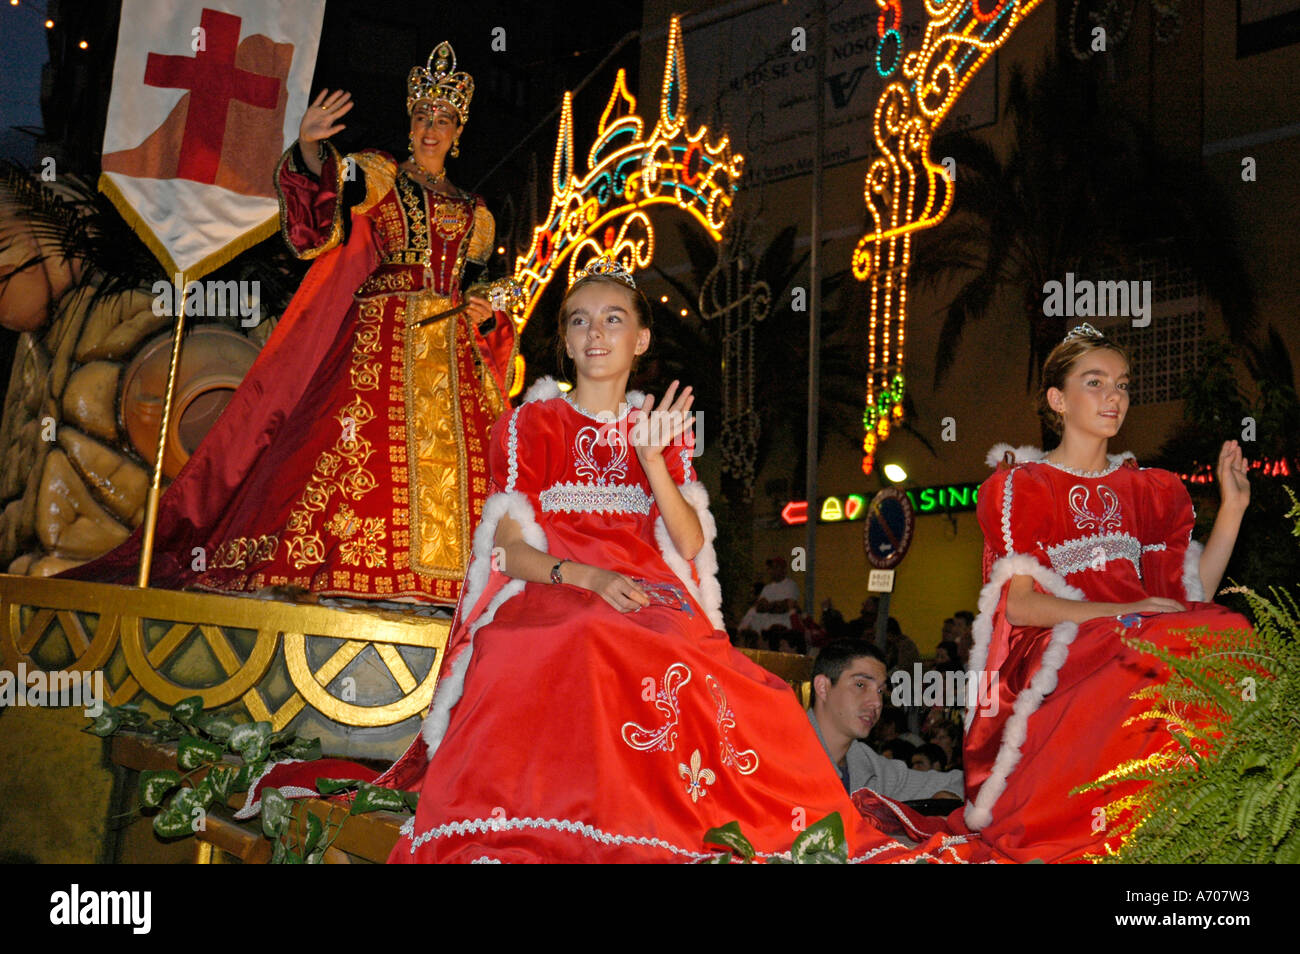 Three red dressed princesses on a car, Fiesta, moros y cristianos, Calpe, Costa Blanca, Spain - Stock Image